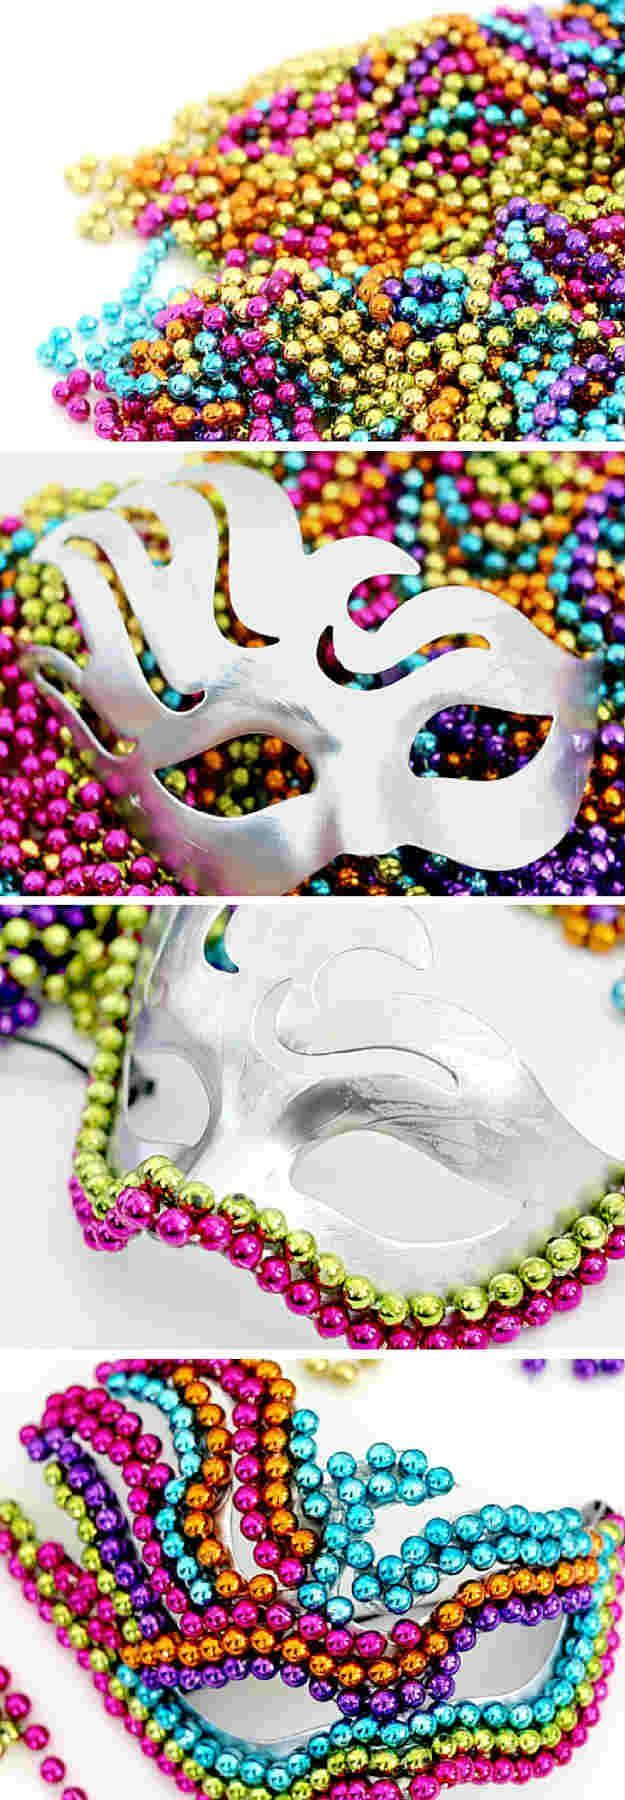 beads mask market creative white vetre holiday top and background carnival photos antanaviciute on gras view mardi